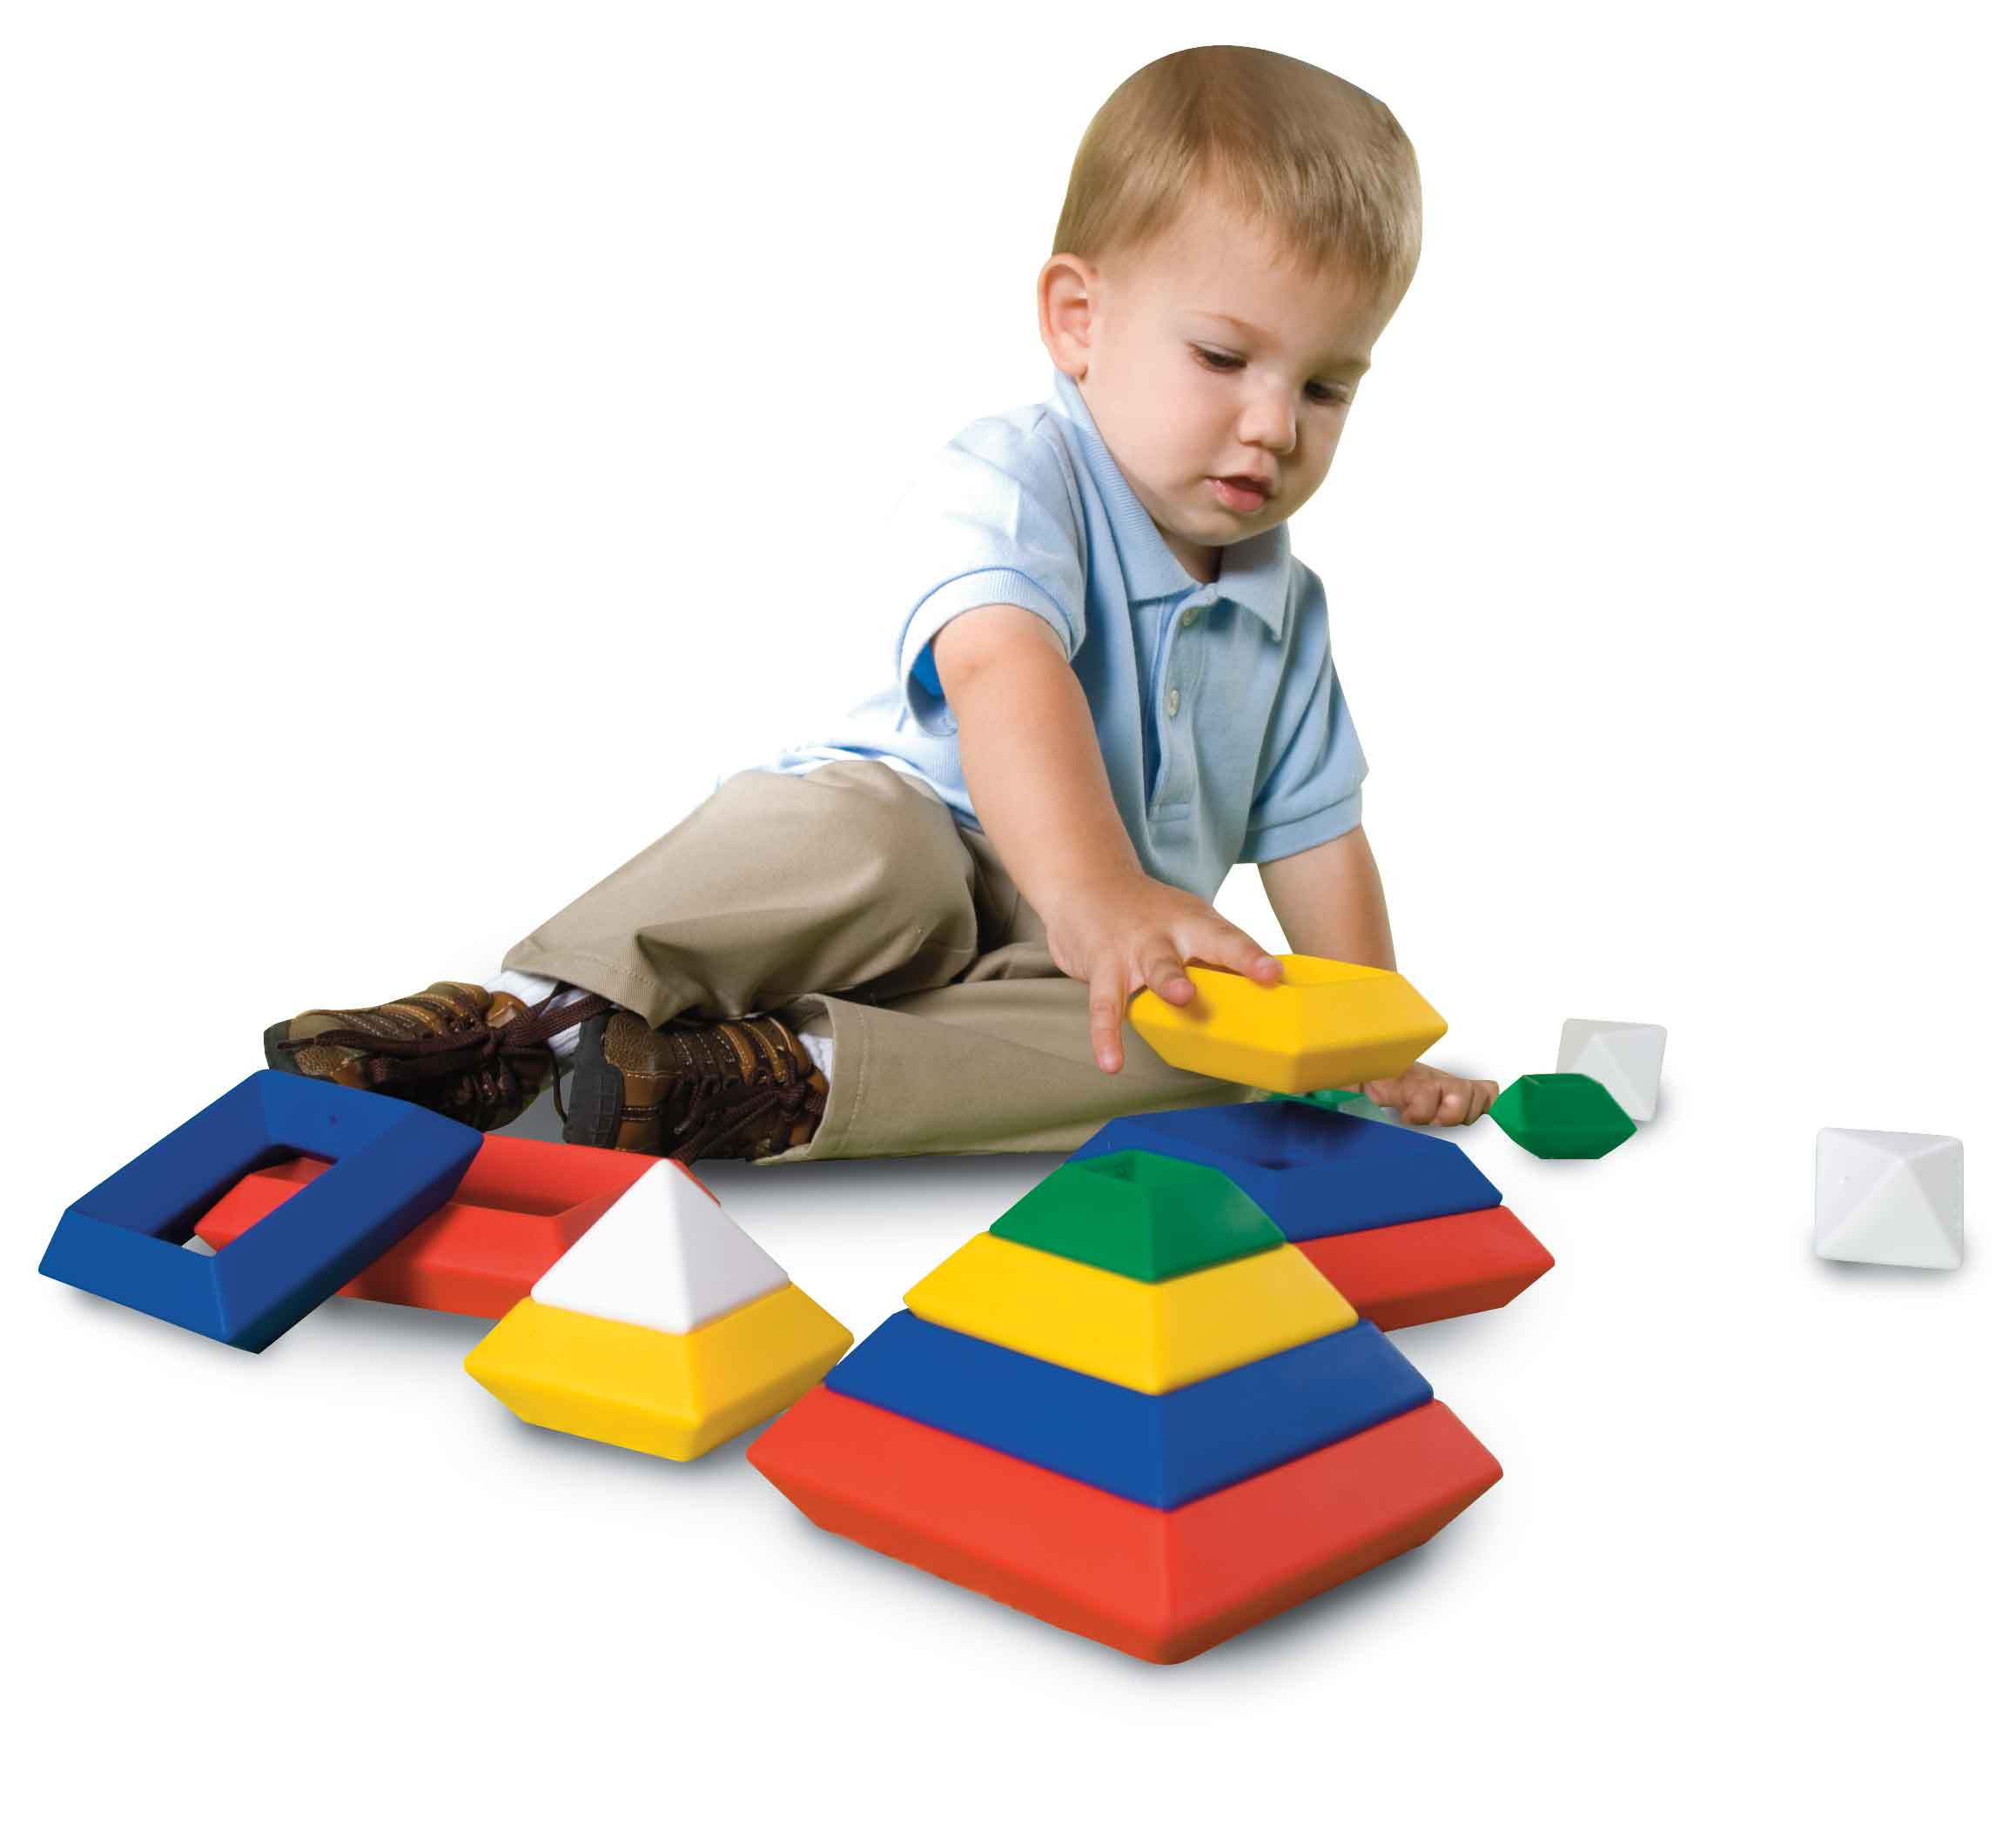 e Step Ahead Partners with AblePlay Toys for Kids with Special Needs